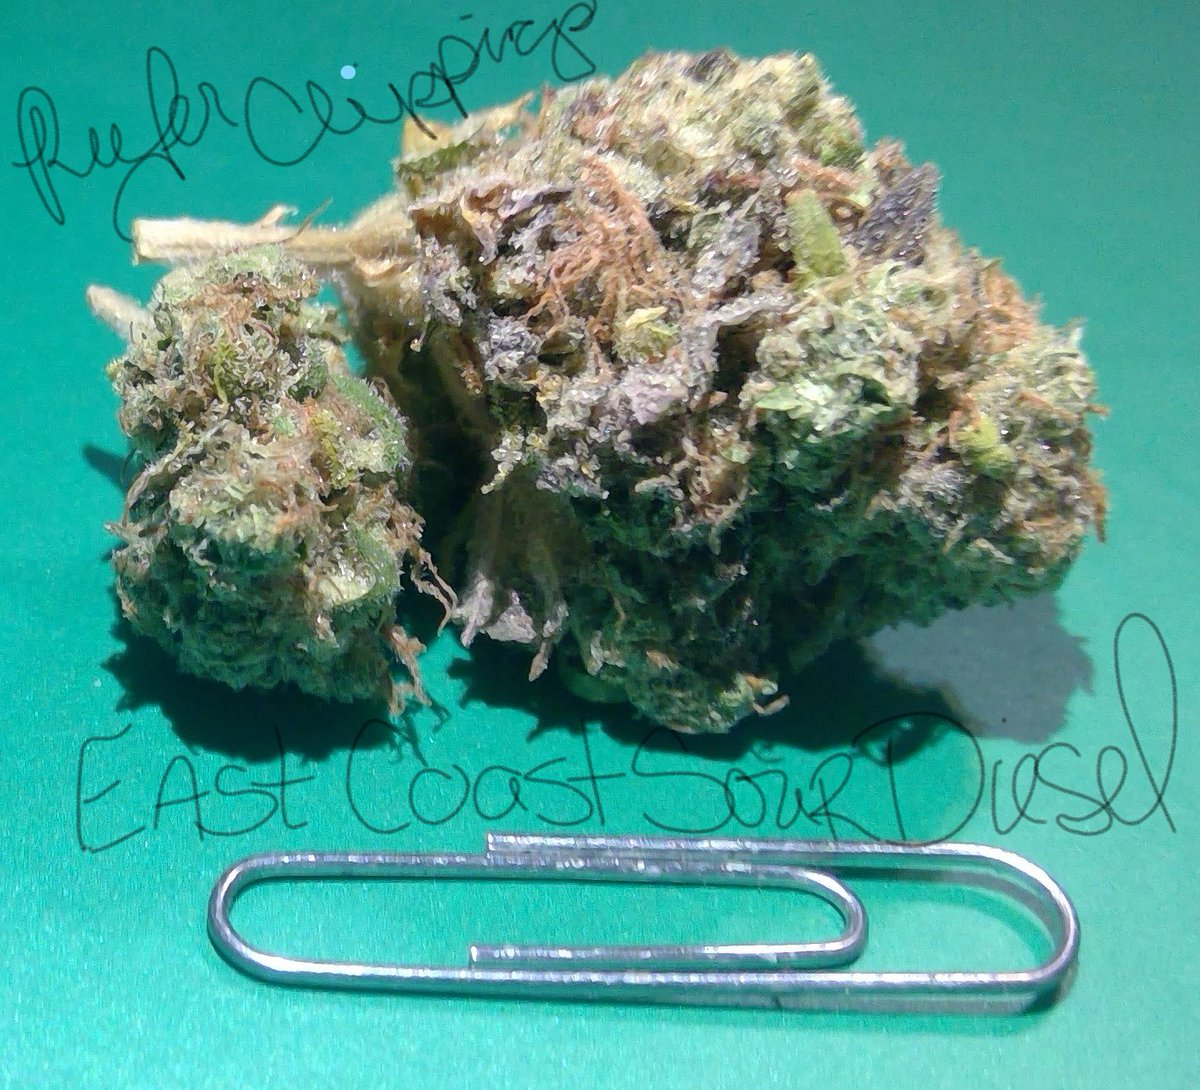 #SignsThatYouLiveInThePast you still measure your #weed by finger folds and call it a lid, a nickle a dime or a quarter bag.<br>http://pic.twitter.com/wqQPVpa1xG